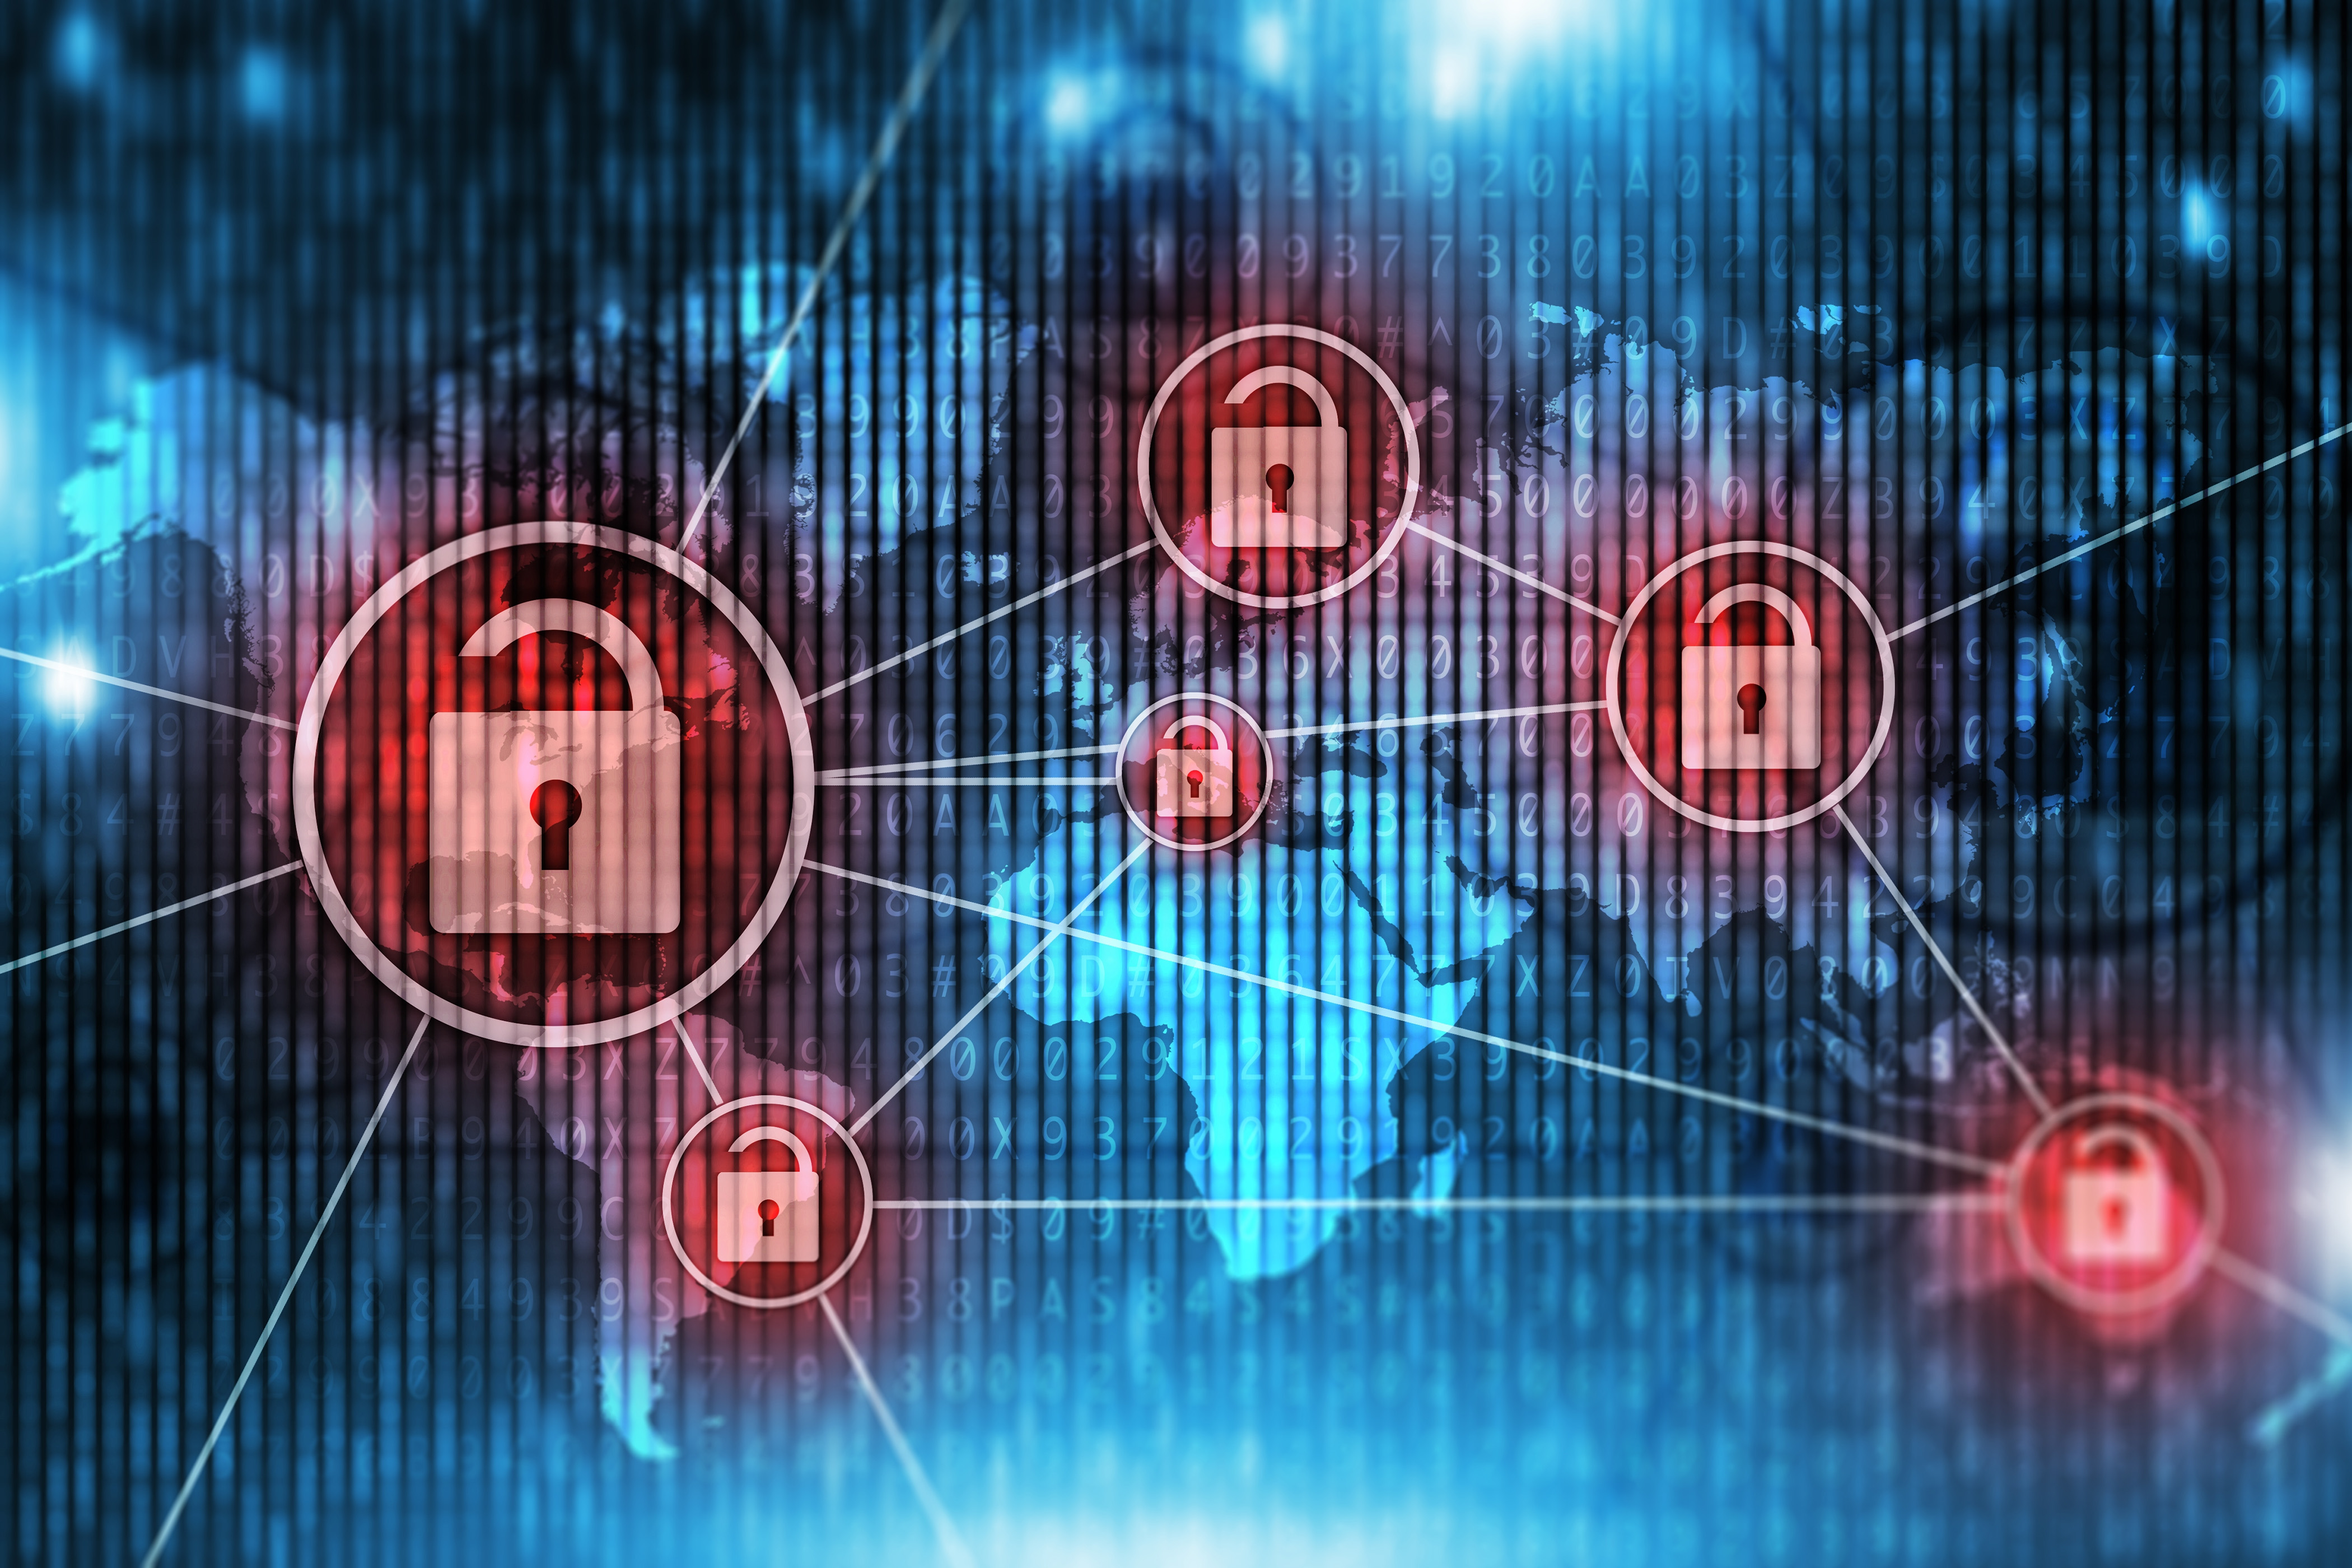 The decision to acknowledge sponsorship of a cyberattack is often linked to whether the attacker hopes to draw attention to a cause or to actually influence events, says political scientist Evan Perkoski. (Getty Images)